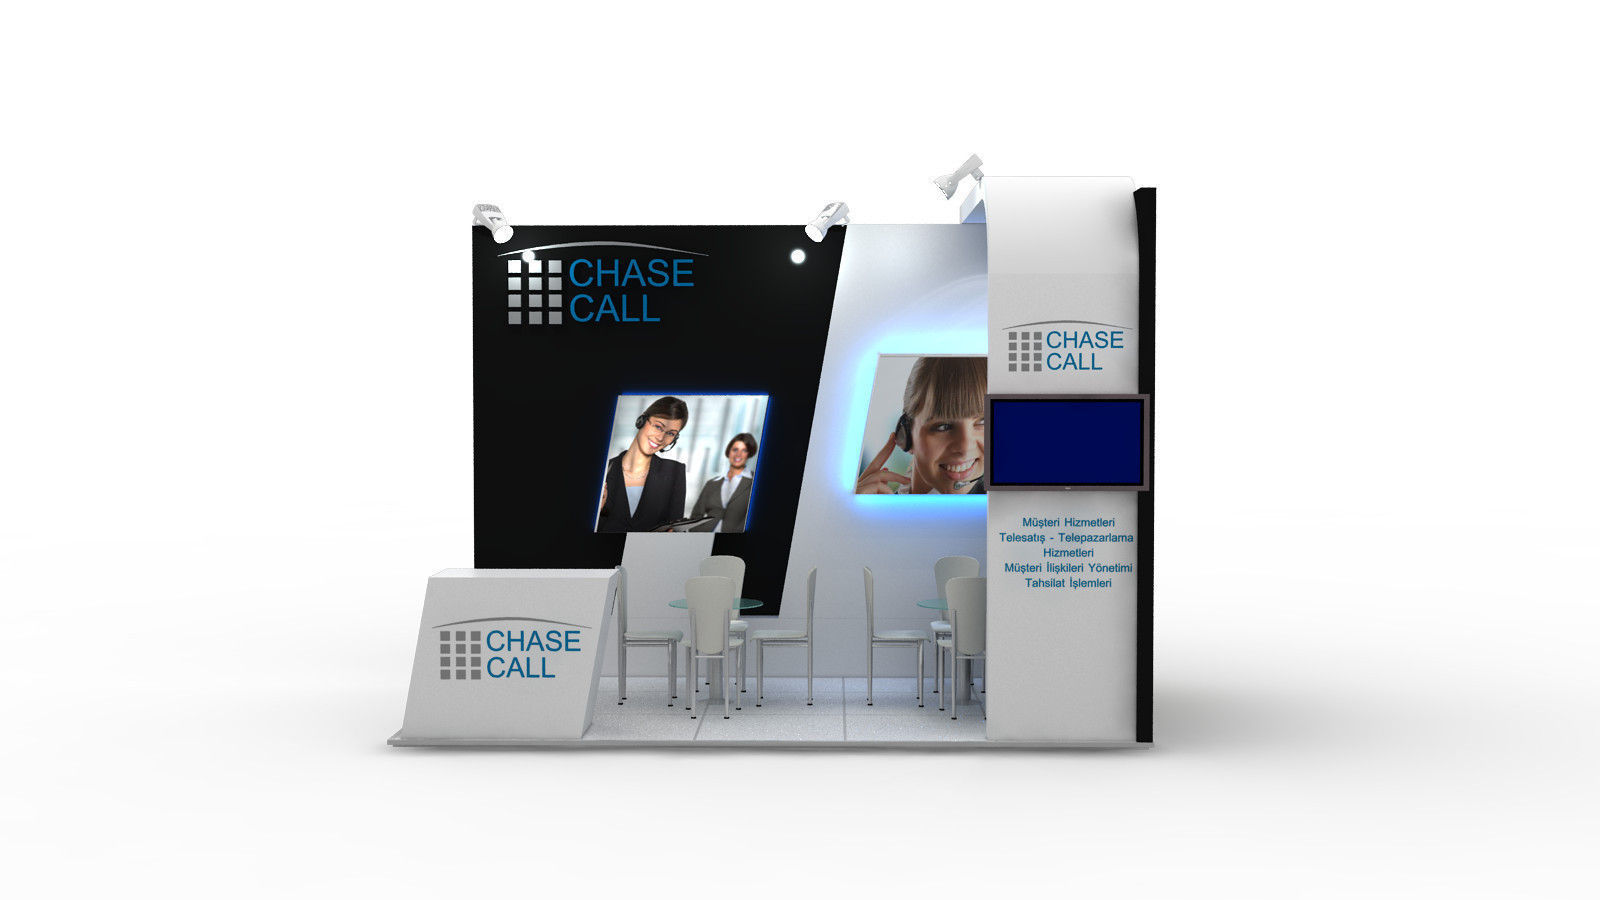 Chasecall Exhibition Design